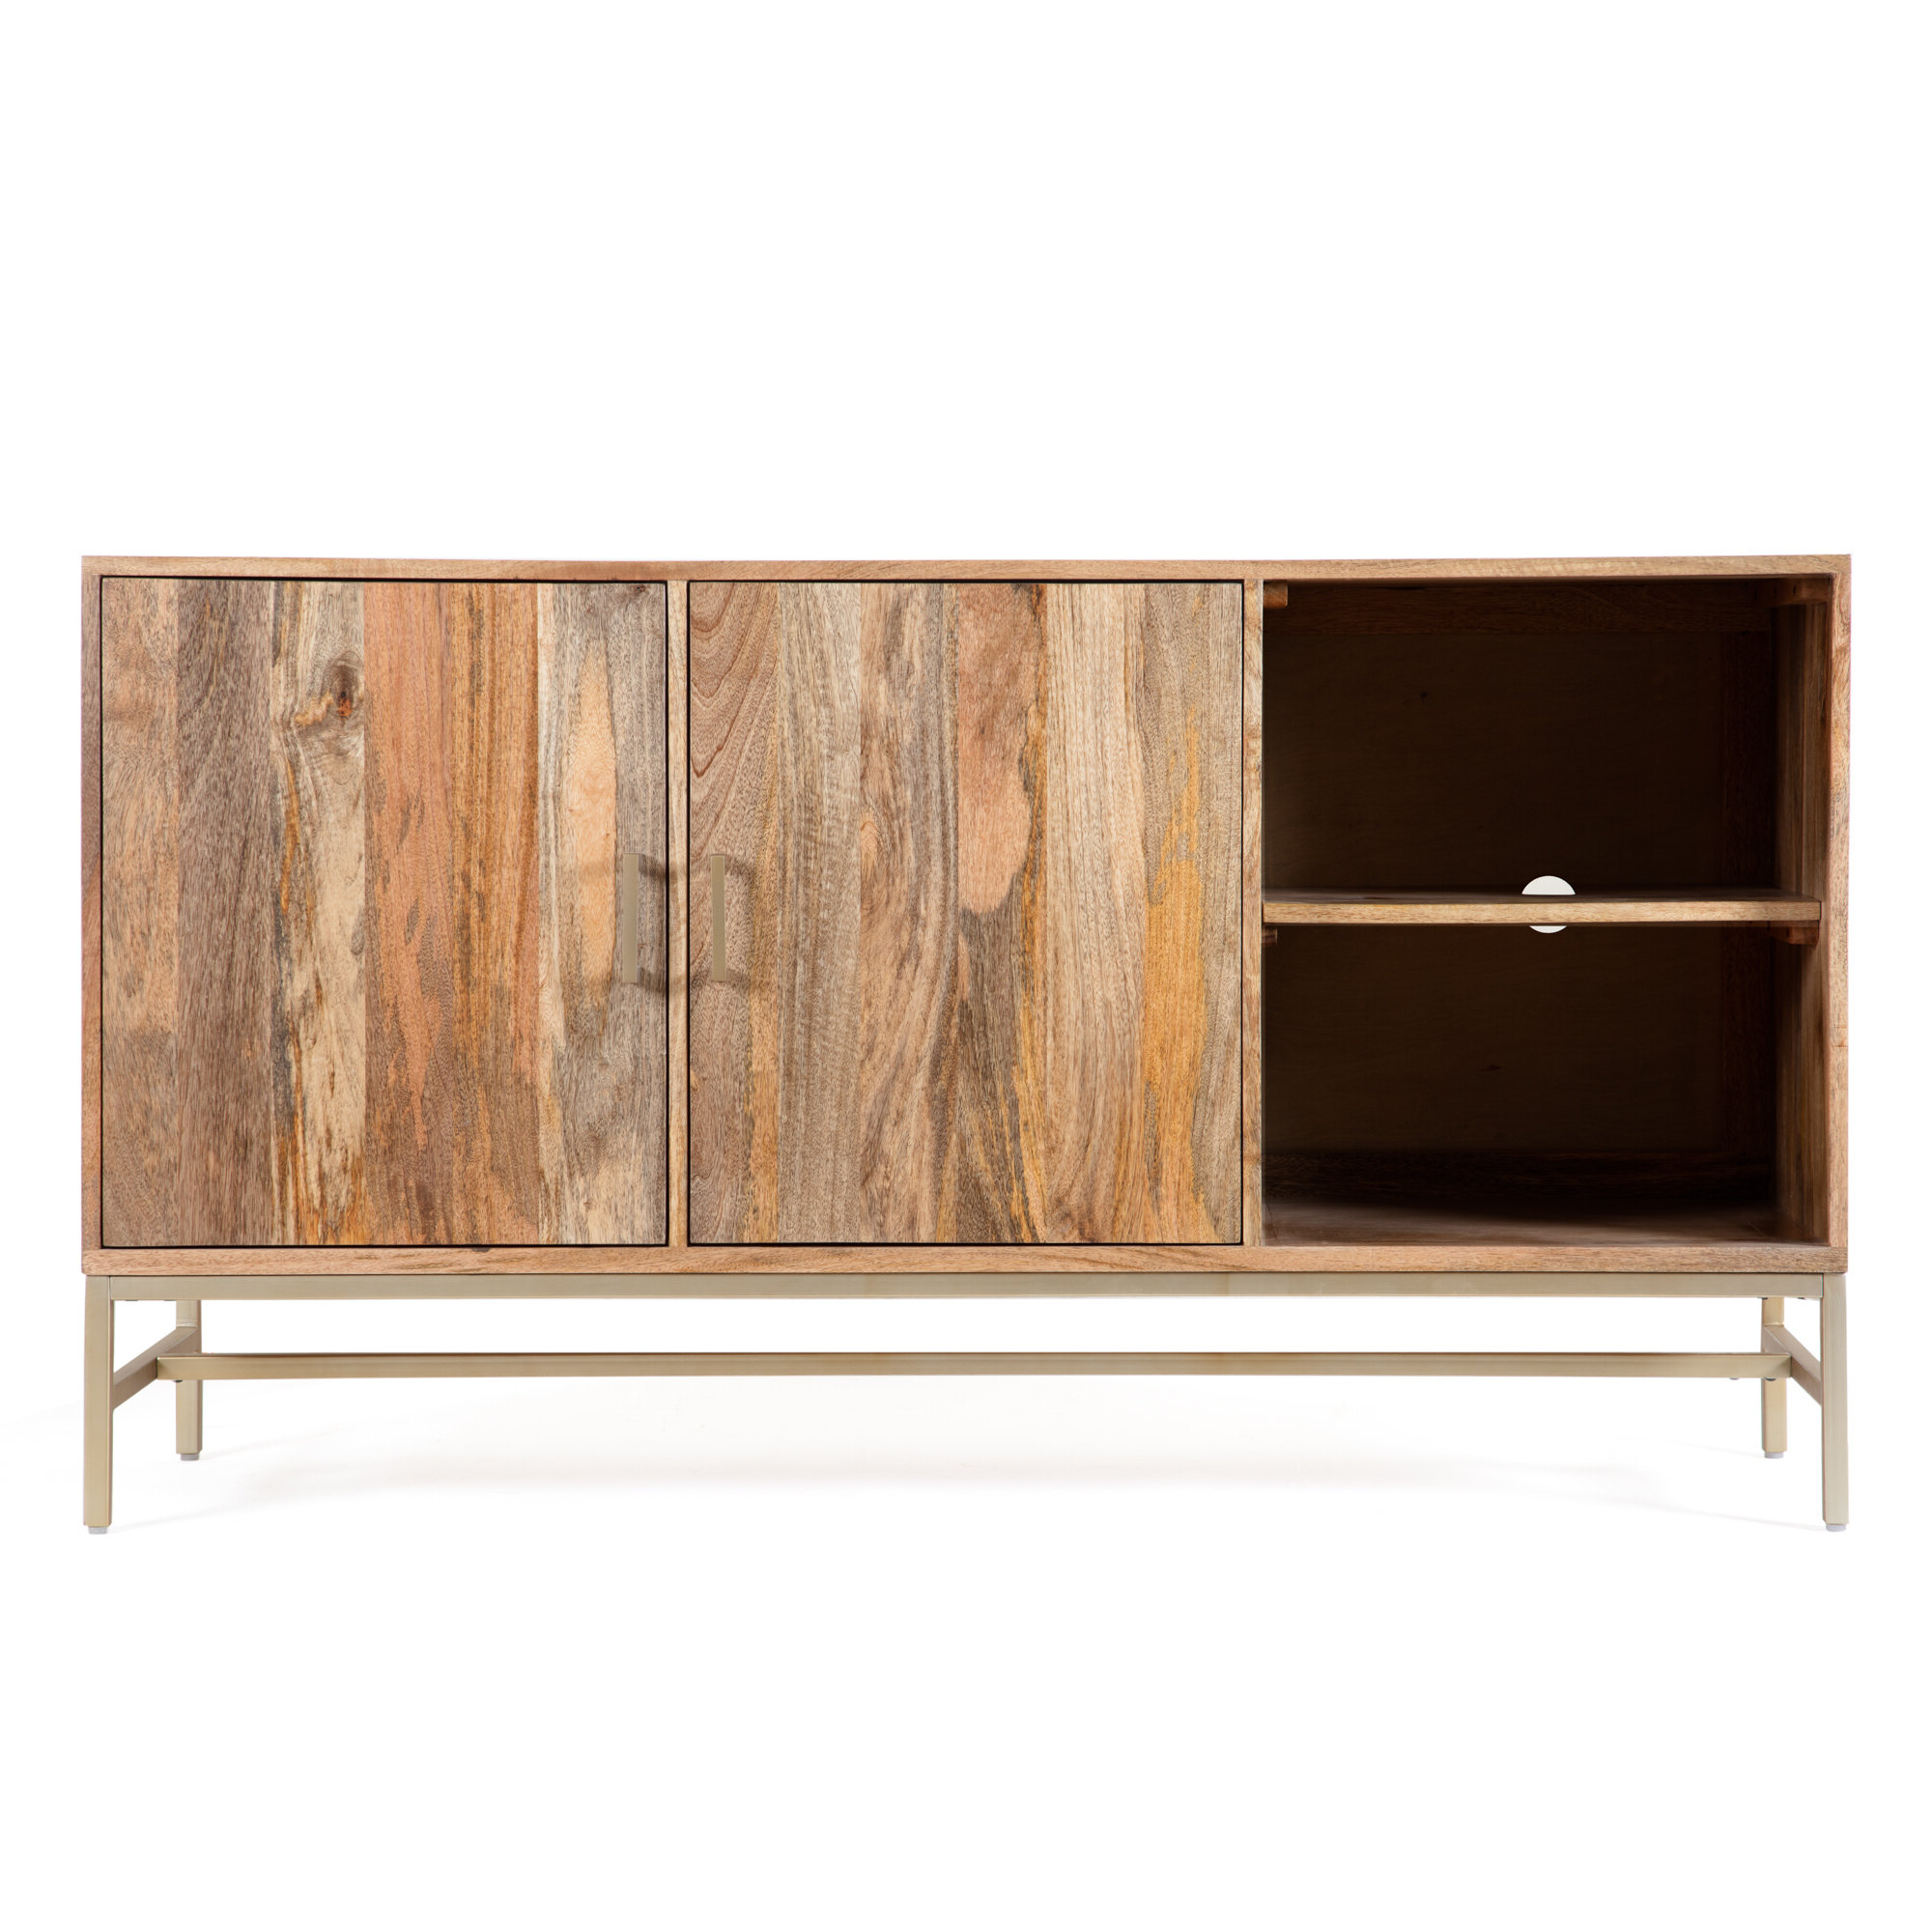 Allmodern For Preferred Lainey Credenzas (Gallery 16 of 20)